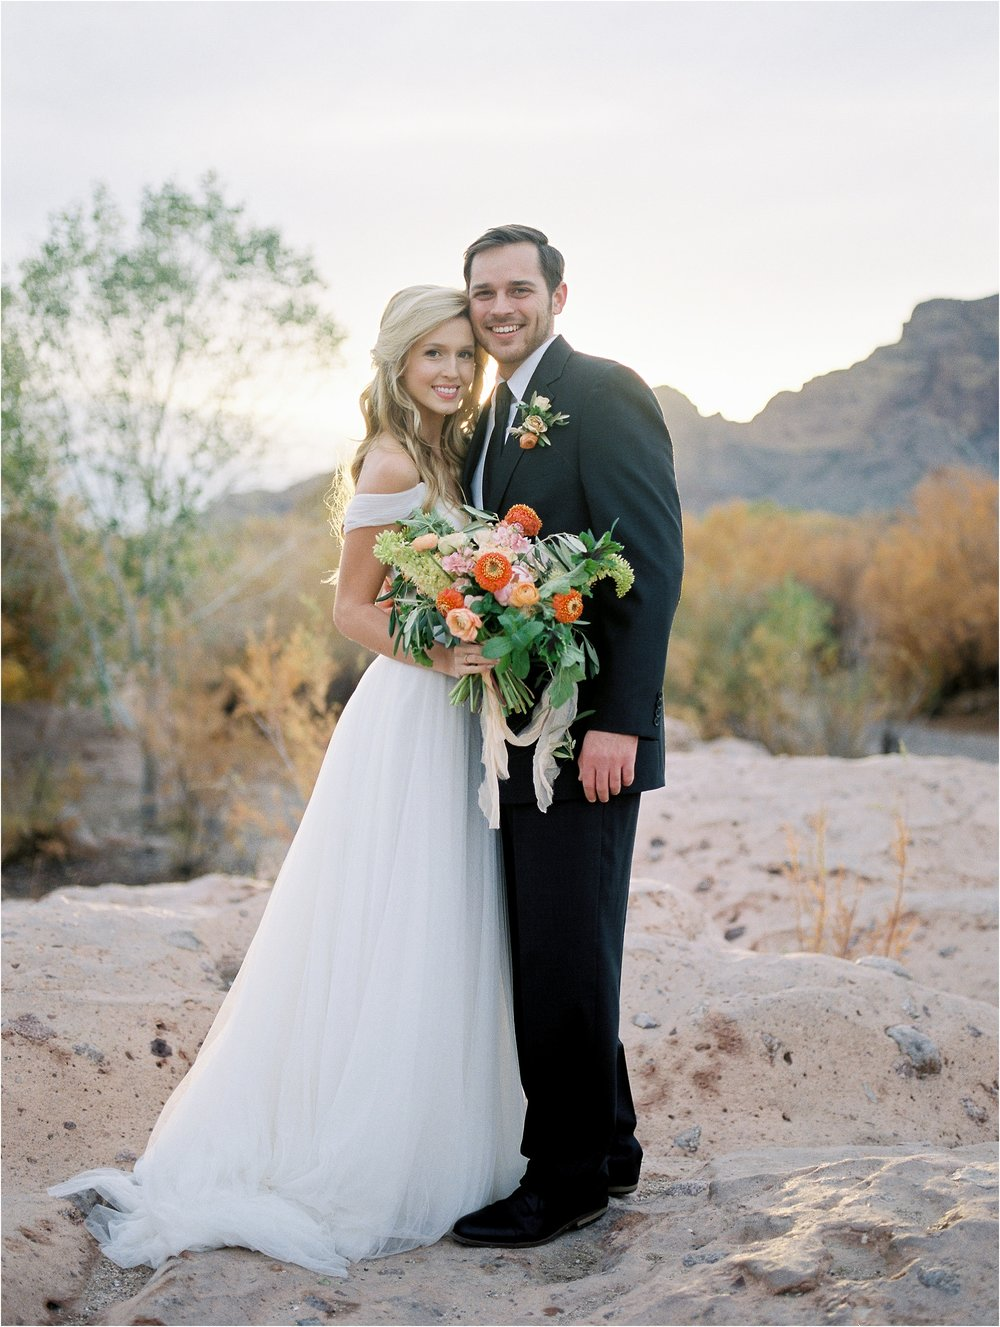 Sarah Jane Photography Film Hybrid Scottsdale Phoenix Arizona Destination Wedding Photographer Ally Ryan Desert_0024.jpg